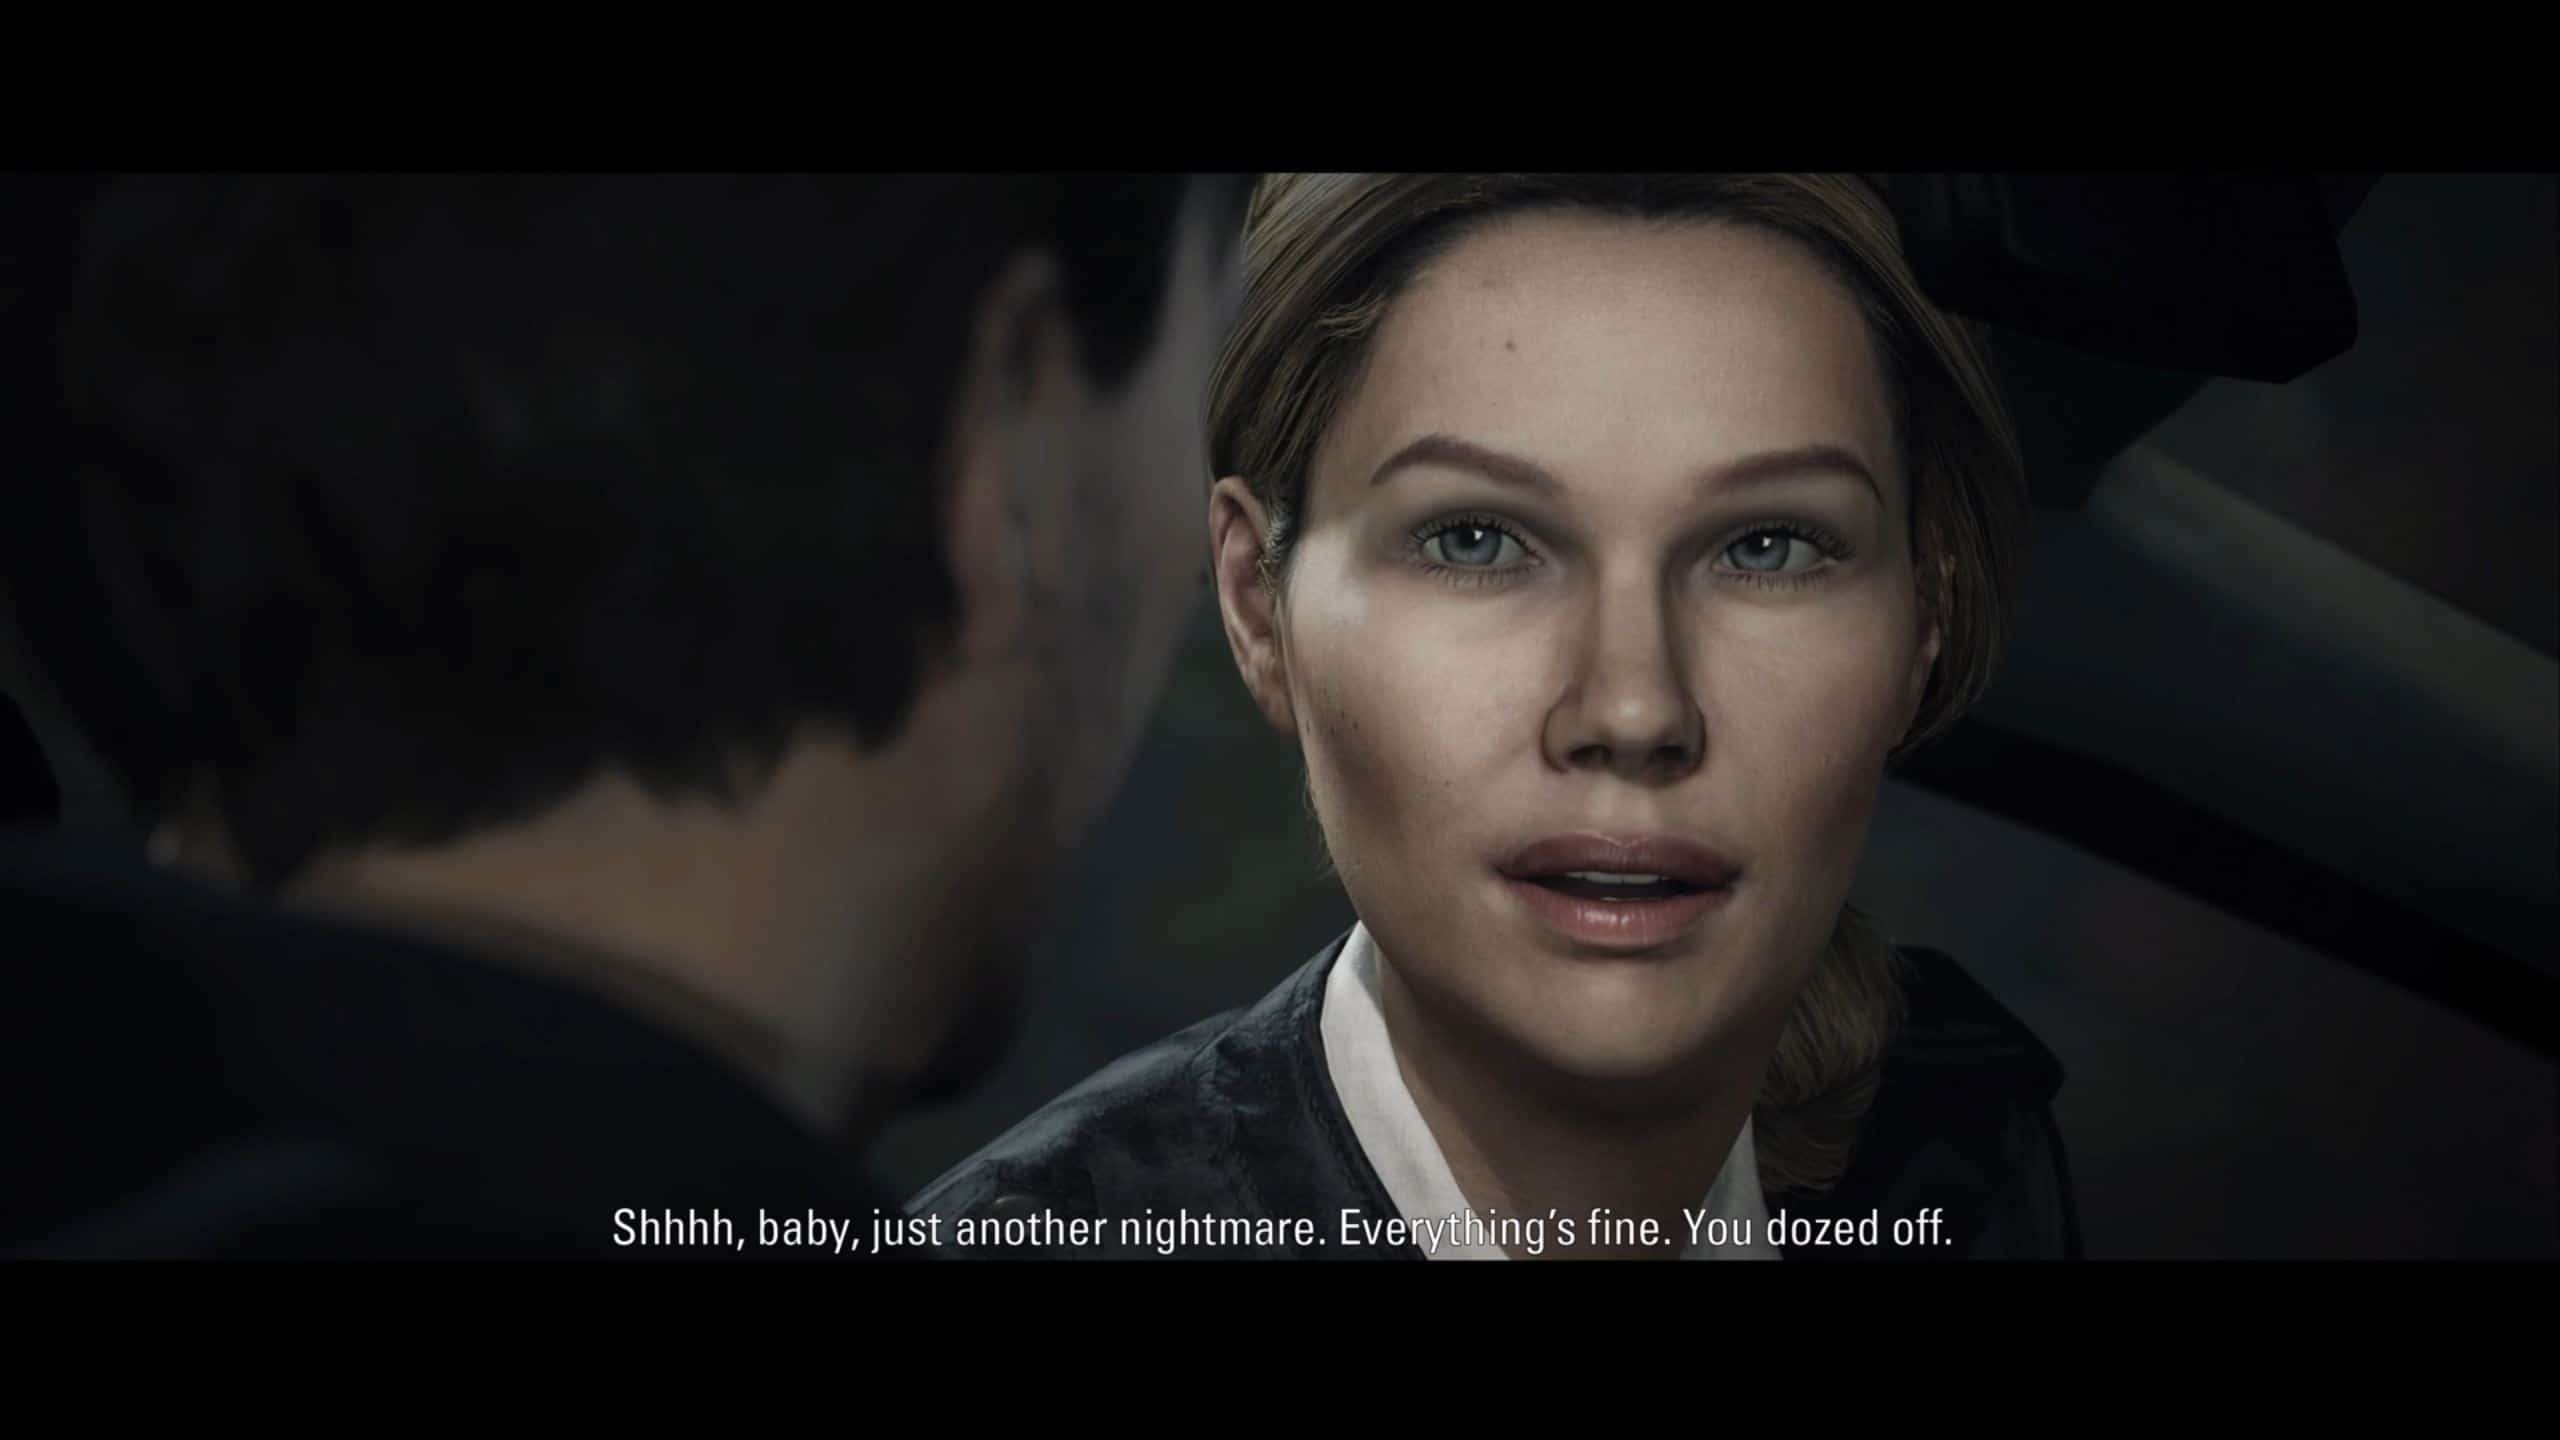 Alan Wake Remastered - Alice's character model in the remaster